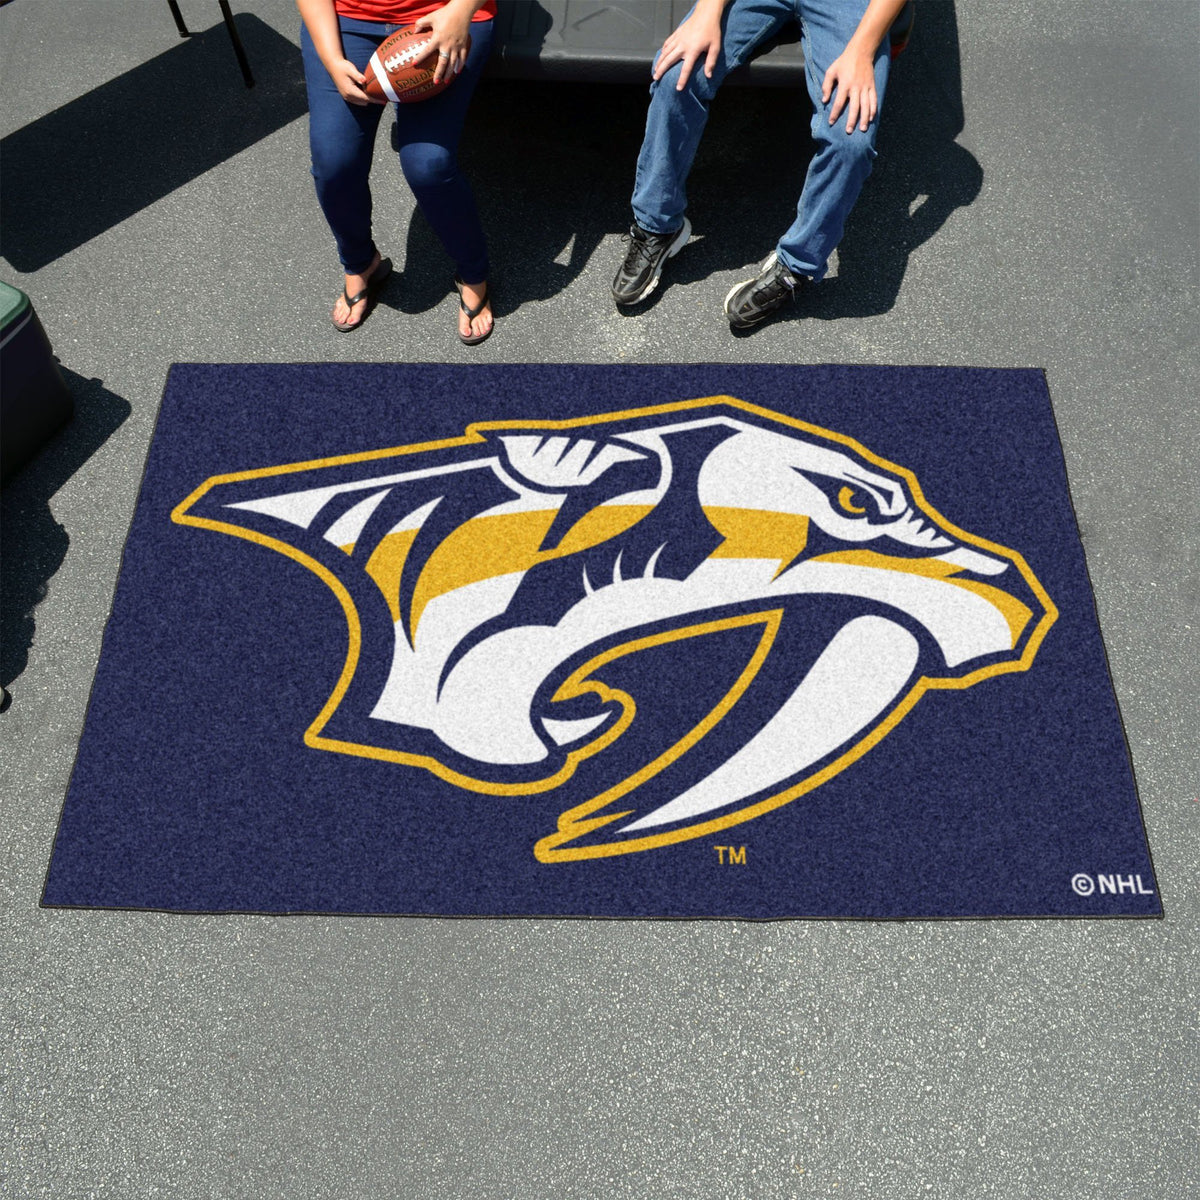 NHL - Ulti-Mat NHL Mats, Rectangular Mats, Ulti-Mat, NHL, Home Fan Mats Nashville Predators